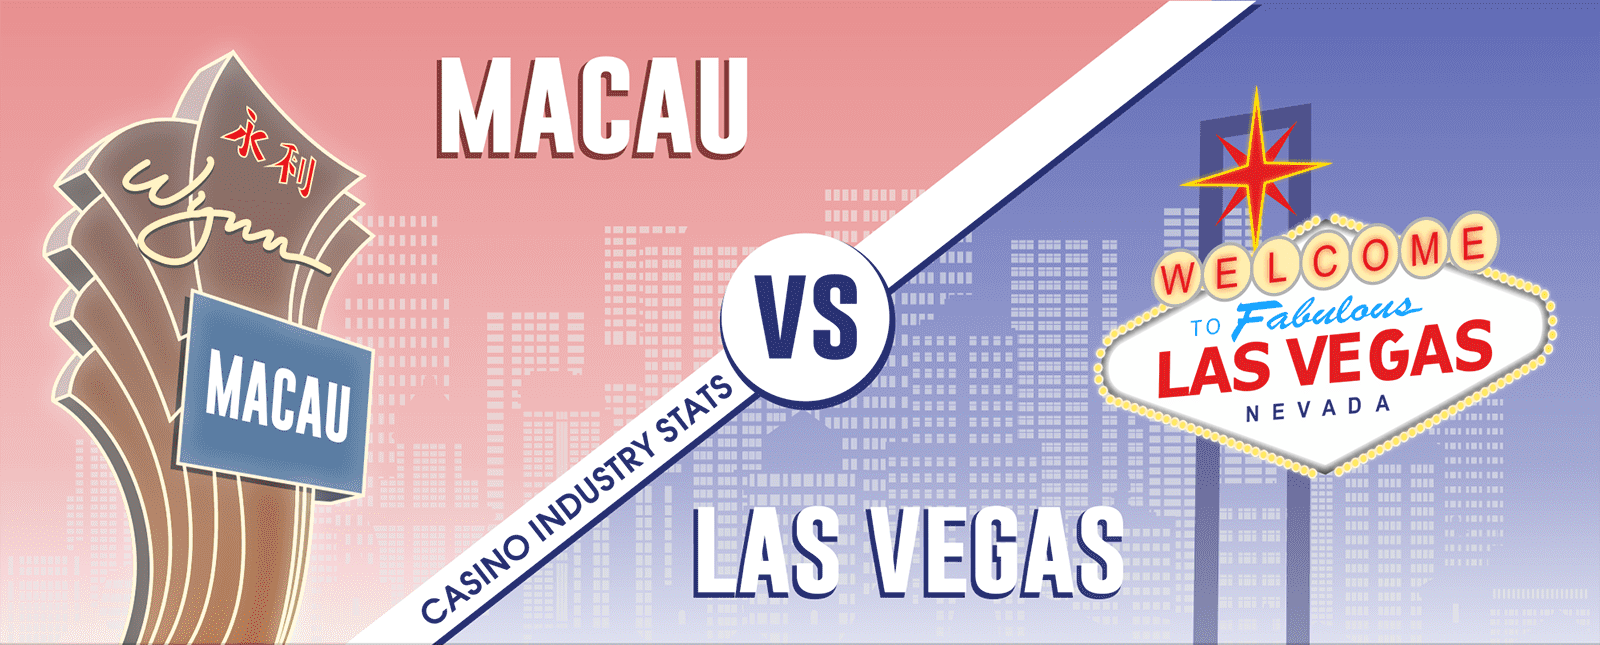 macau casino revenue vs las vegas